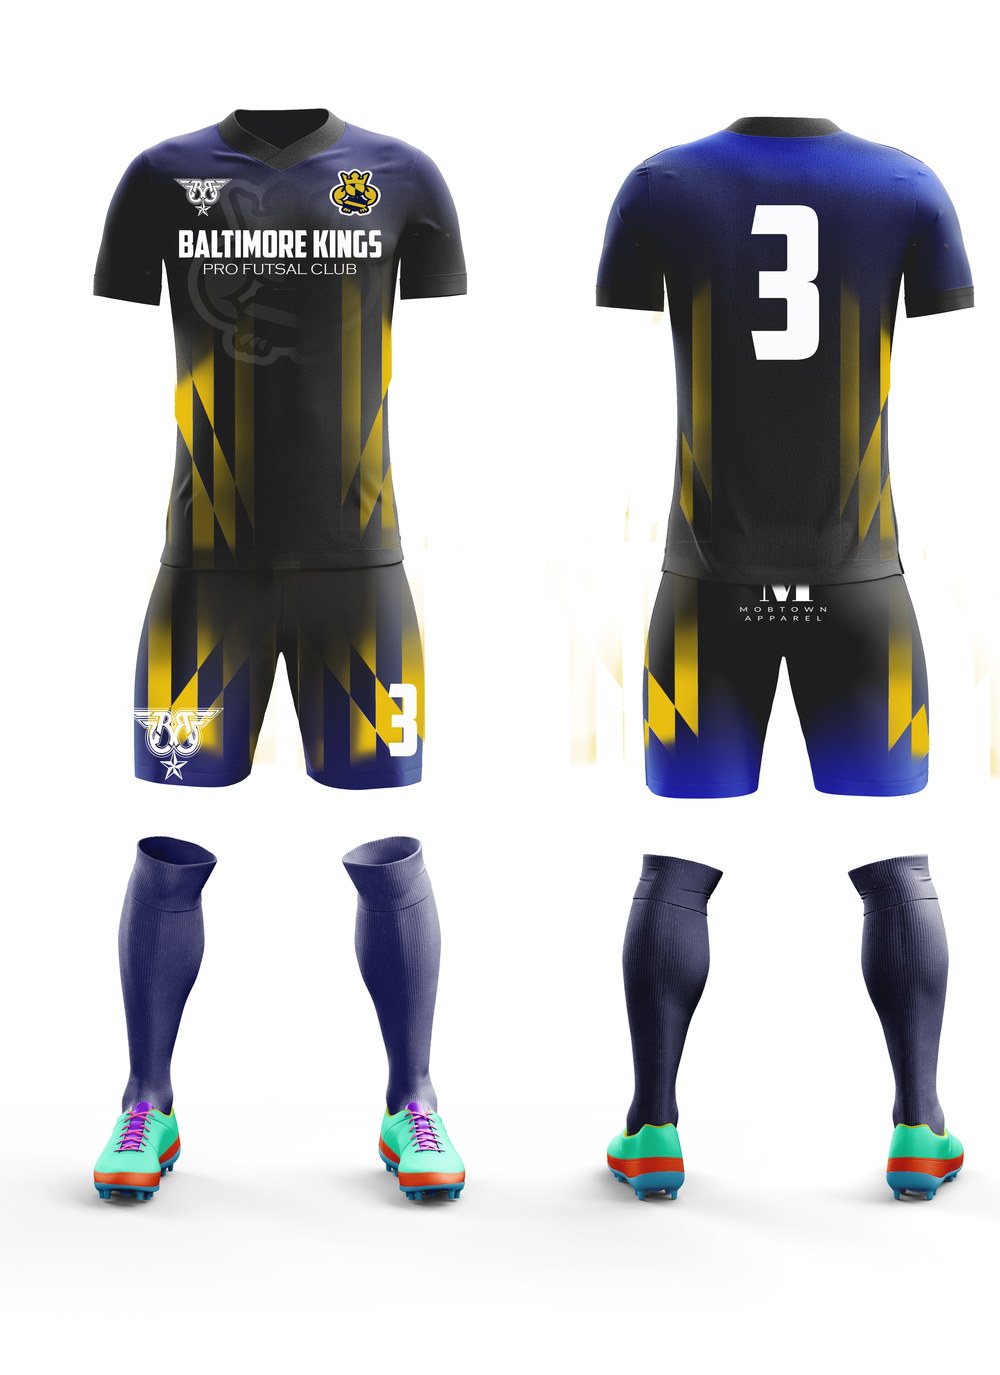 BALTIMORE-KINGS-BACK-OF-SOCCER-JERSEY-TEMP.png